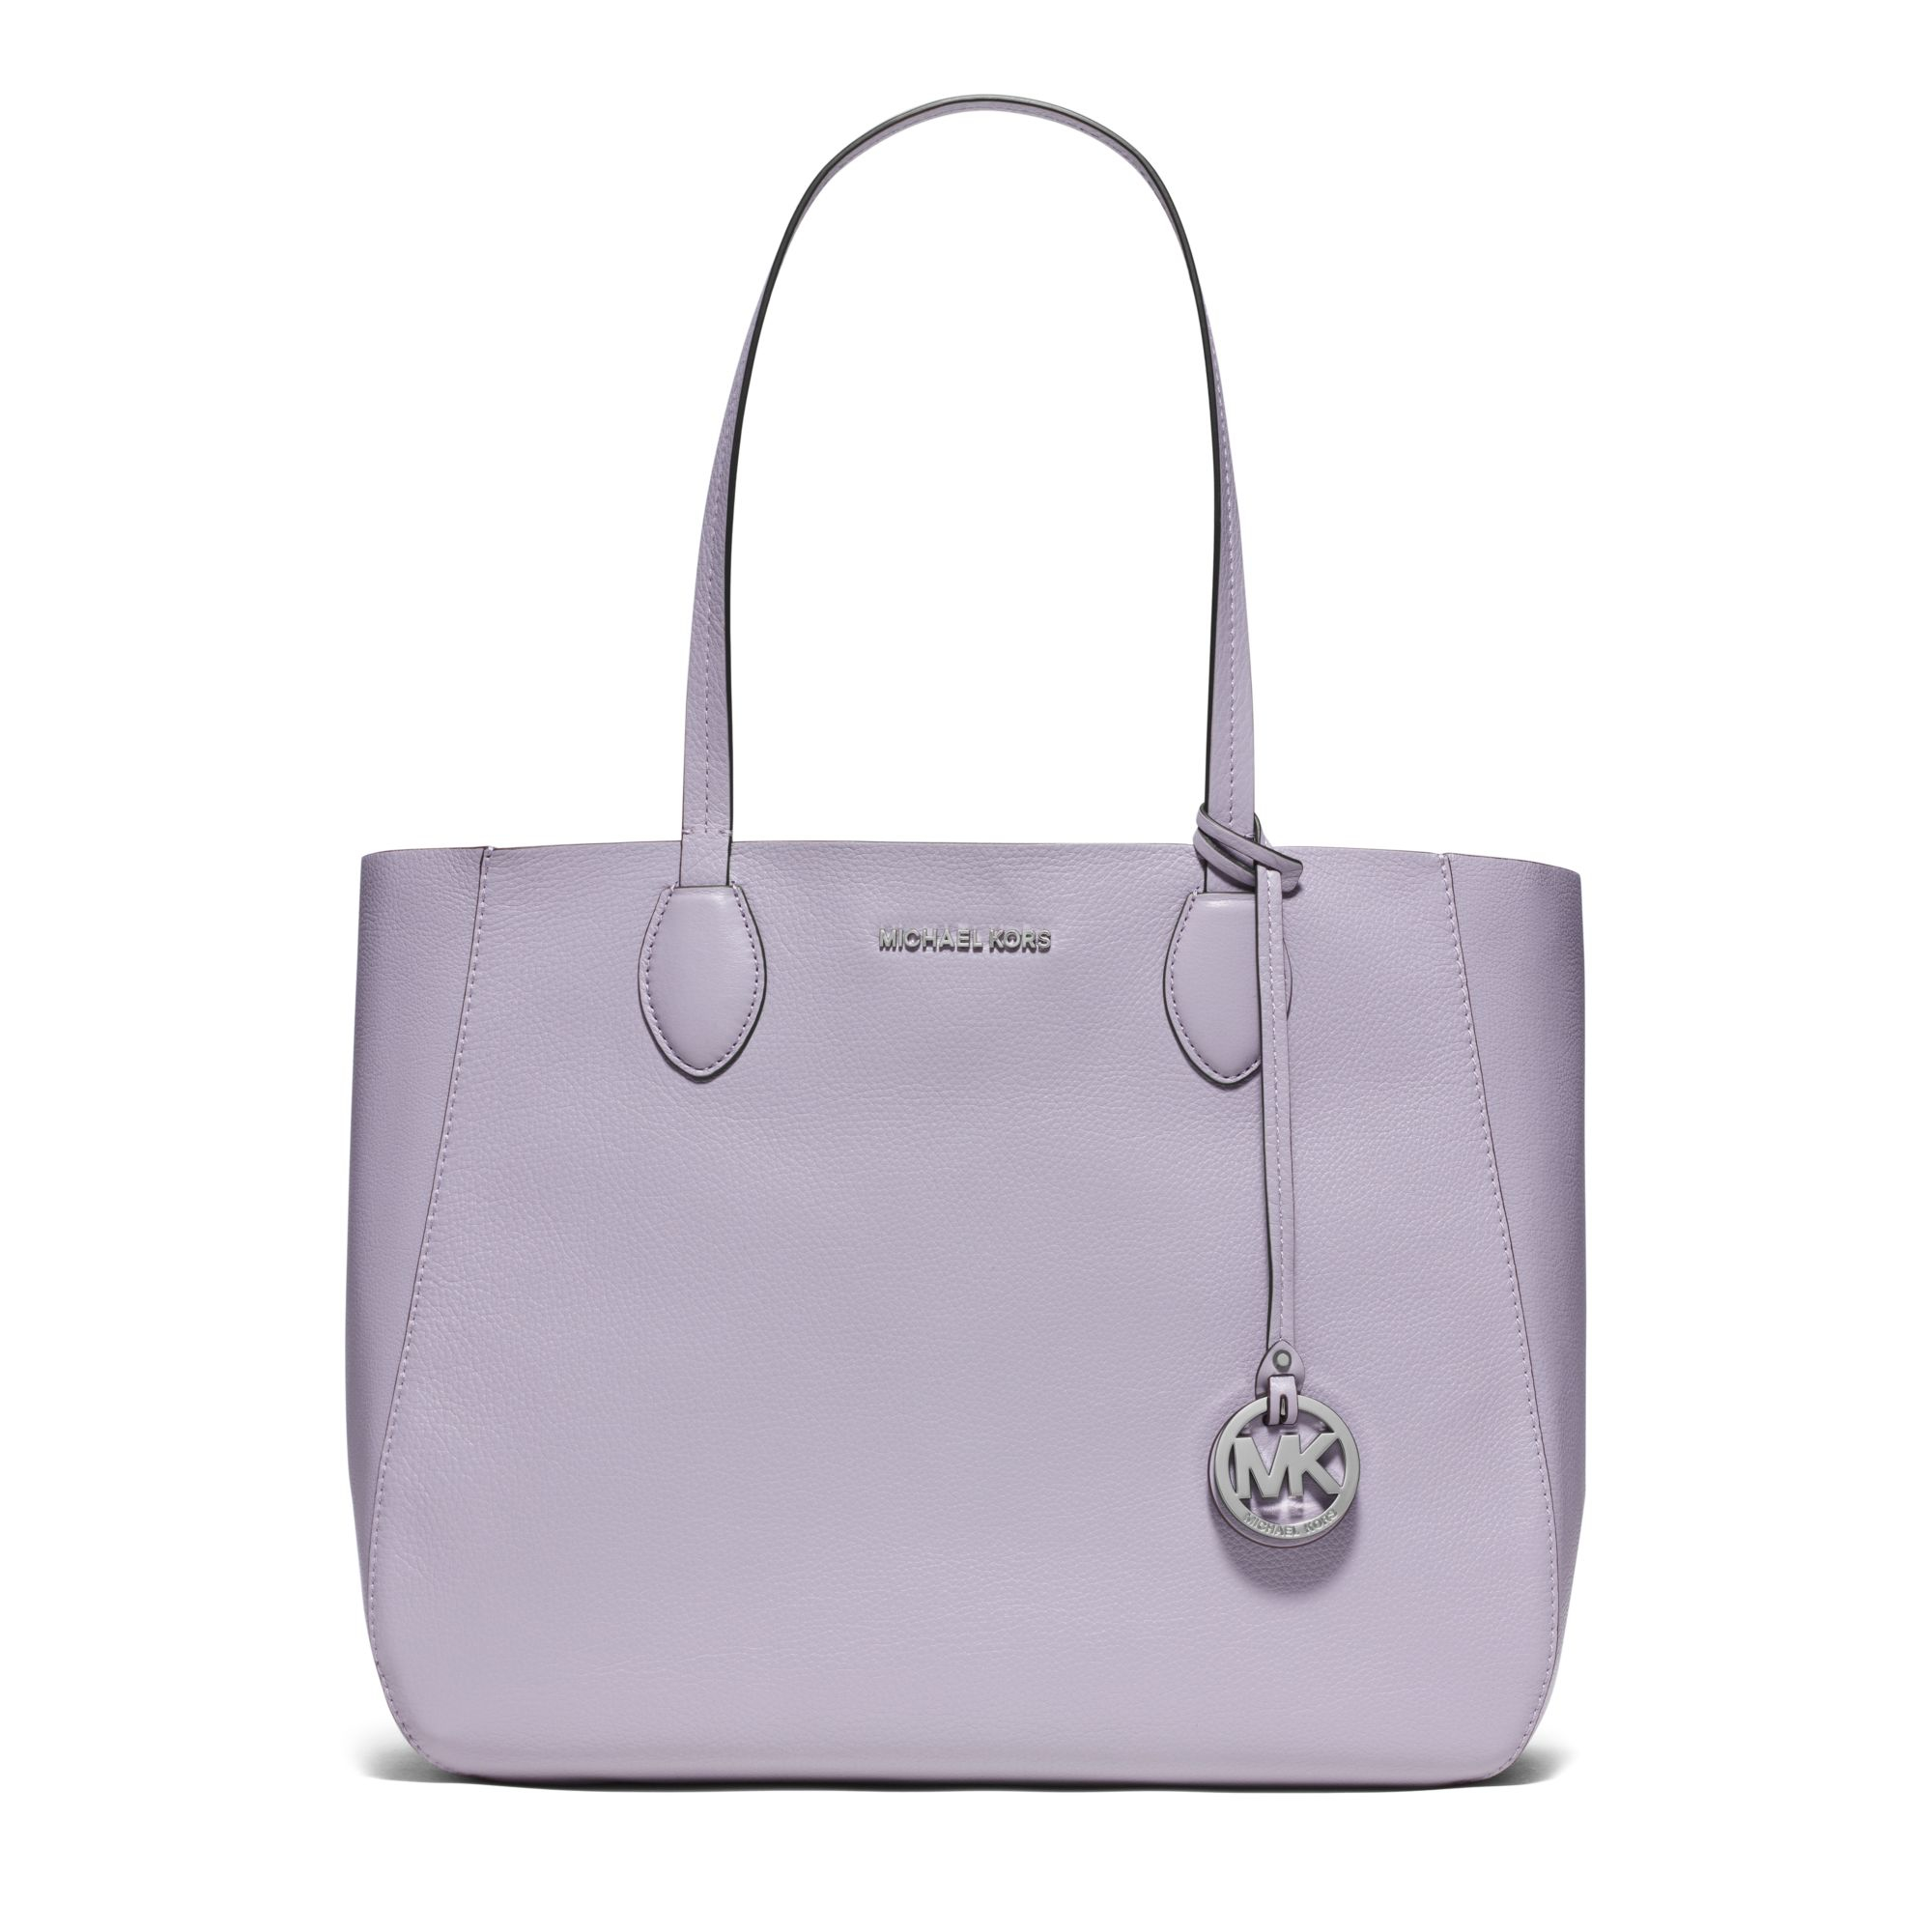 9767eb29dbca ... Lyst - Michael Kors Mae Soft Leather Carryall Tote in Purple ...